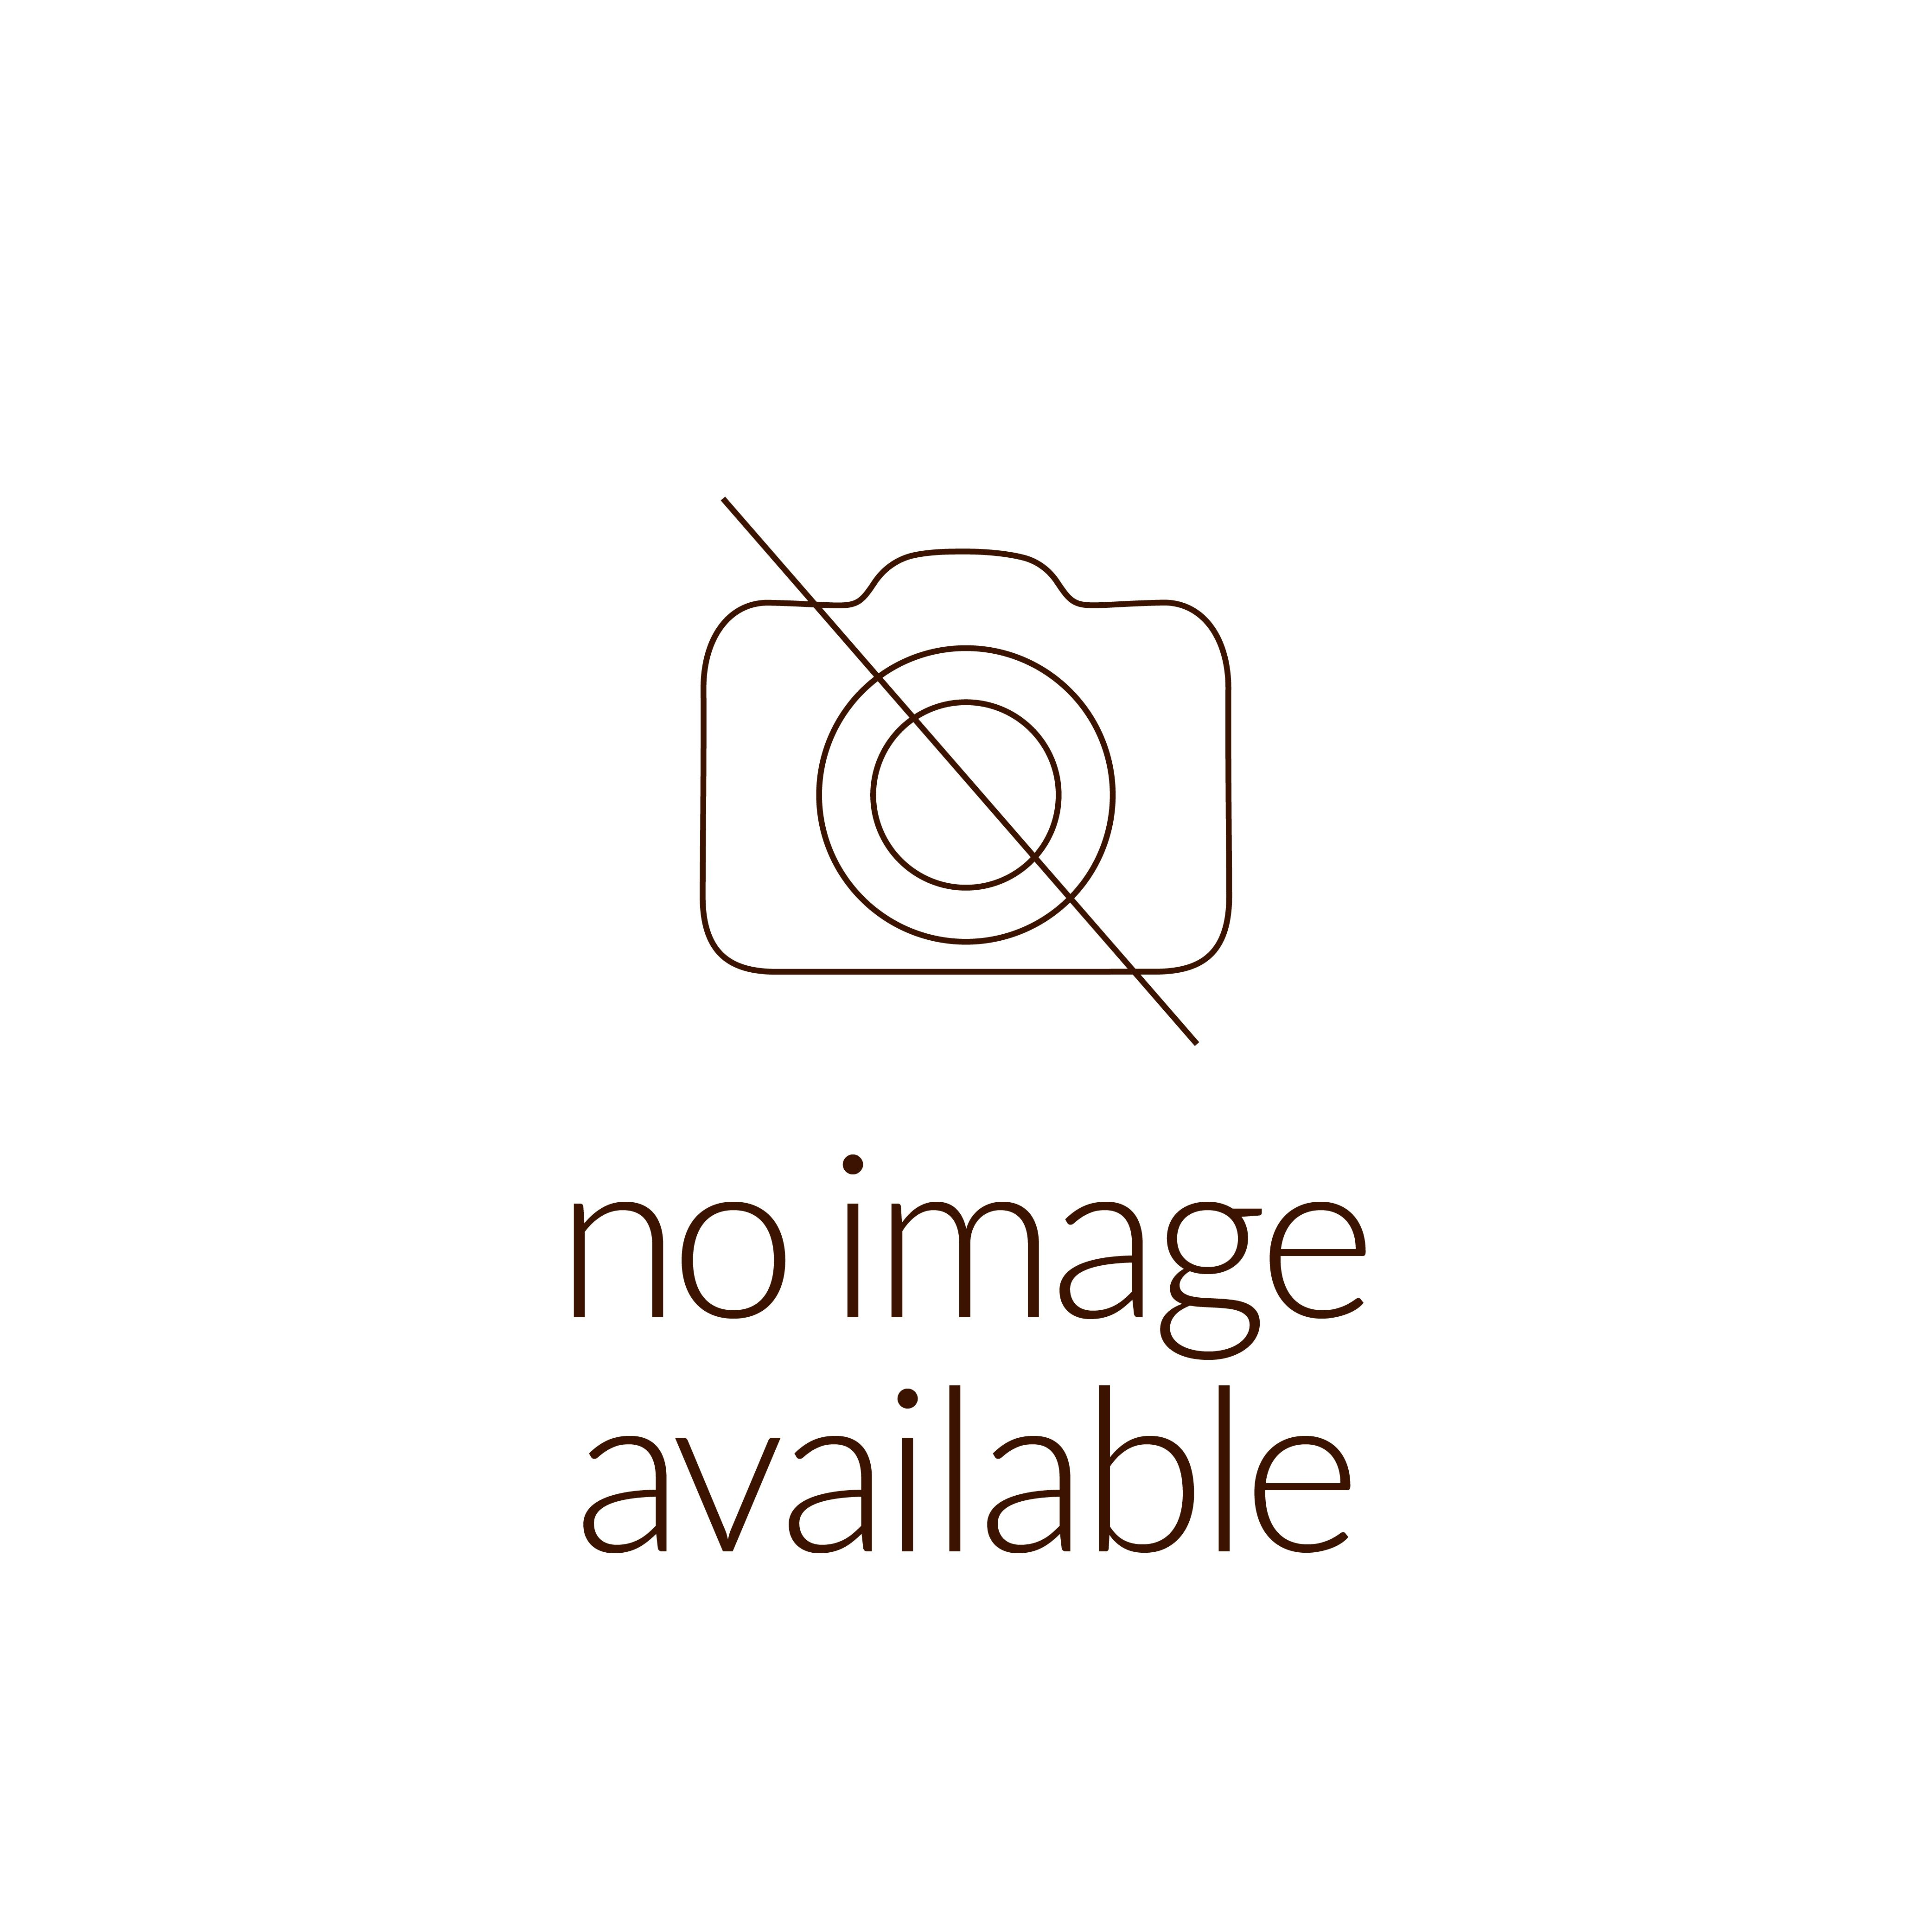 Commemorative Coin, Swimming, Gold 916, Proof, 30 mm, 16.96 gr - Obverse